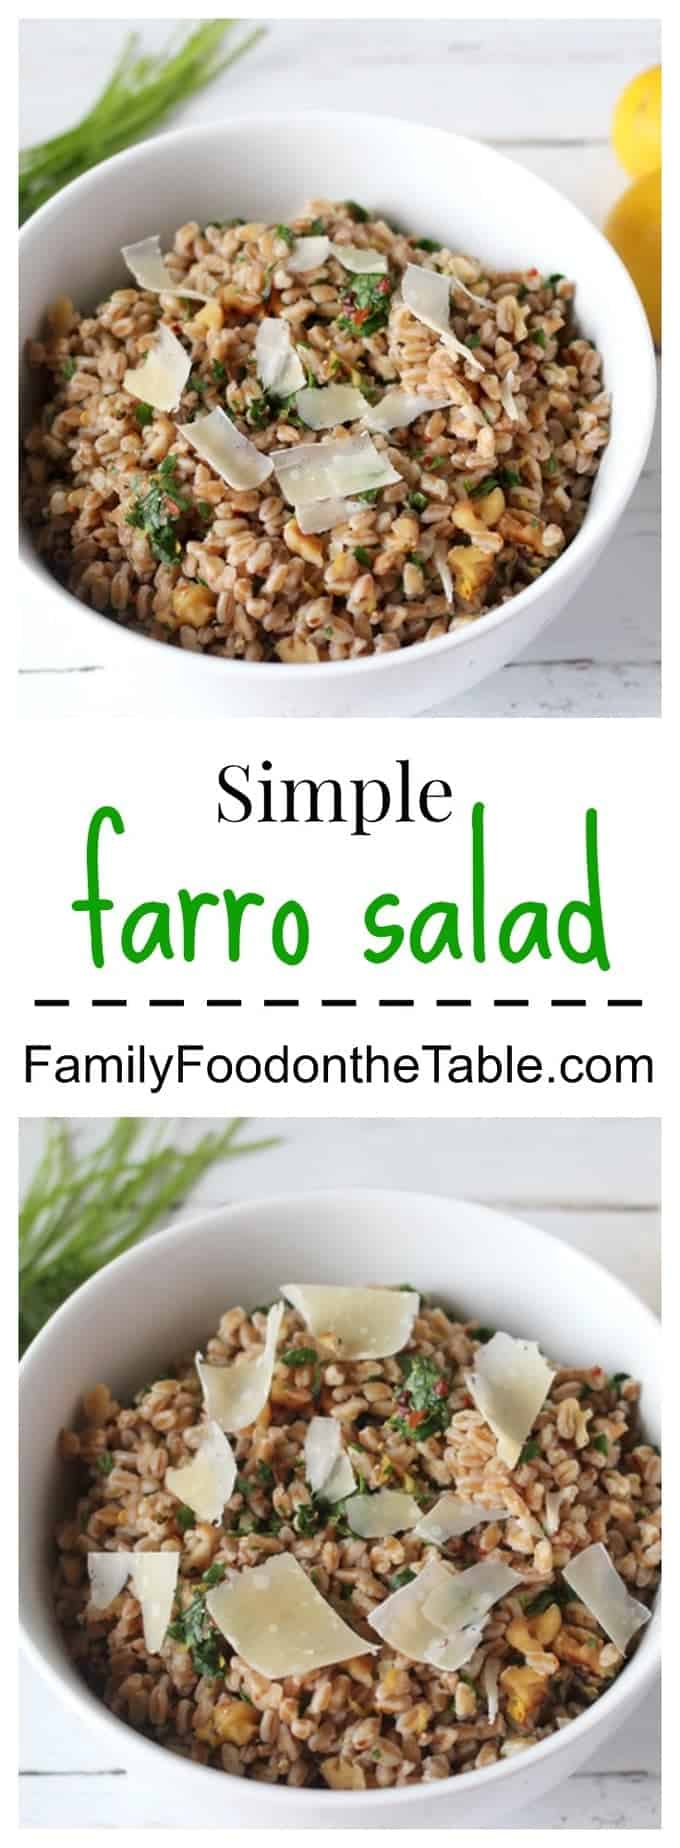 Simple farro salad makes for an easy side dish - or lunch - using basic, on-hand ingredients